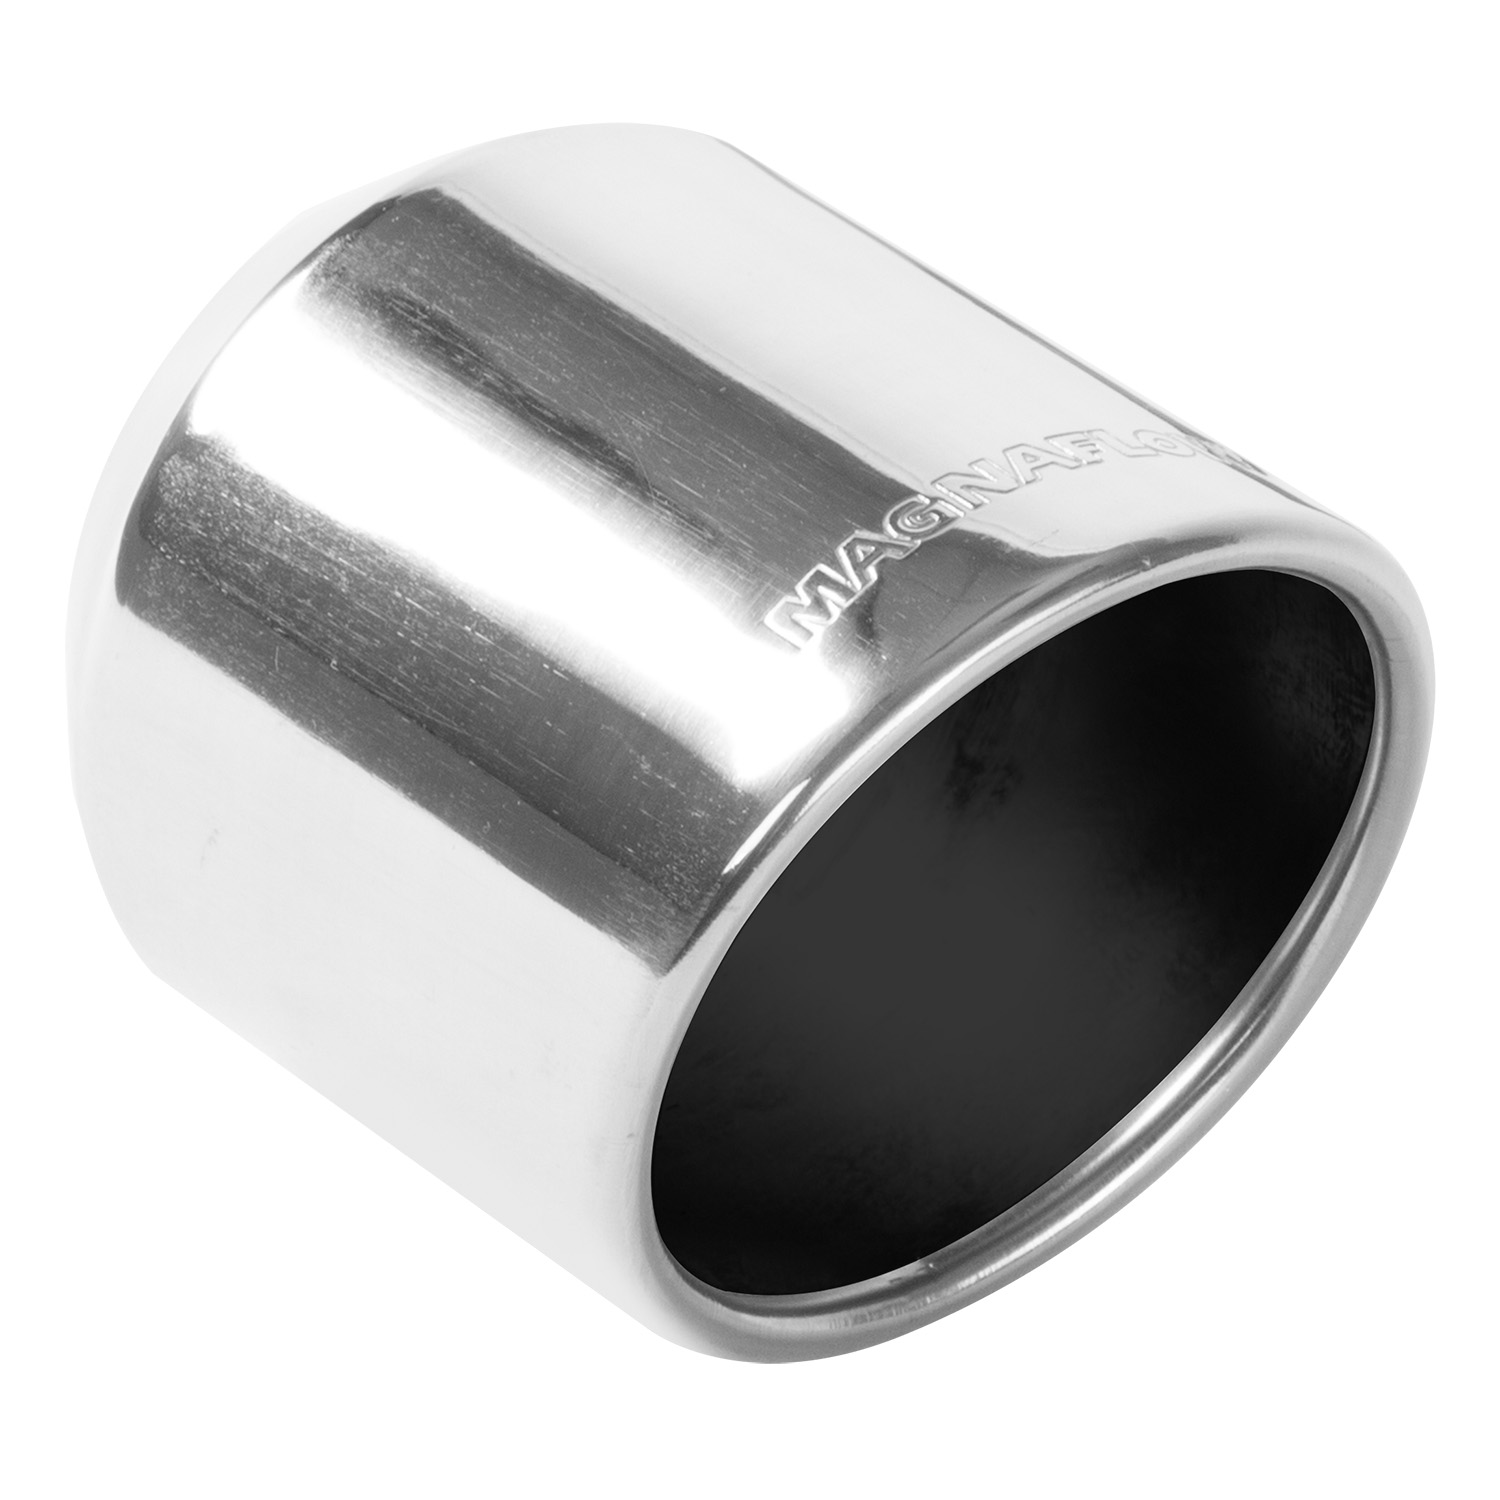 35136 magnaflow performance exhaust tail pipe tip 2 1 2 inch inlet